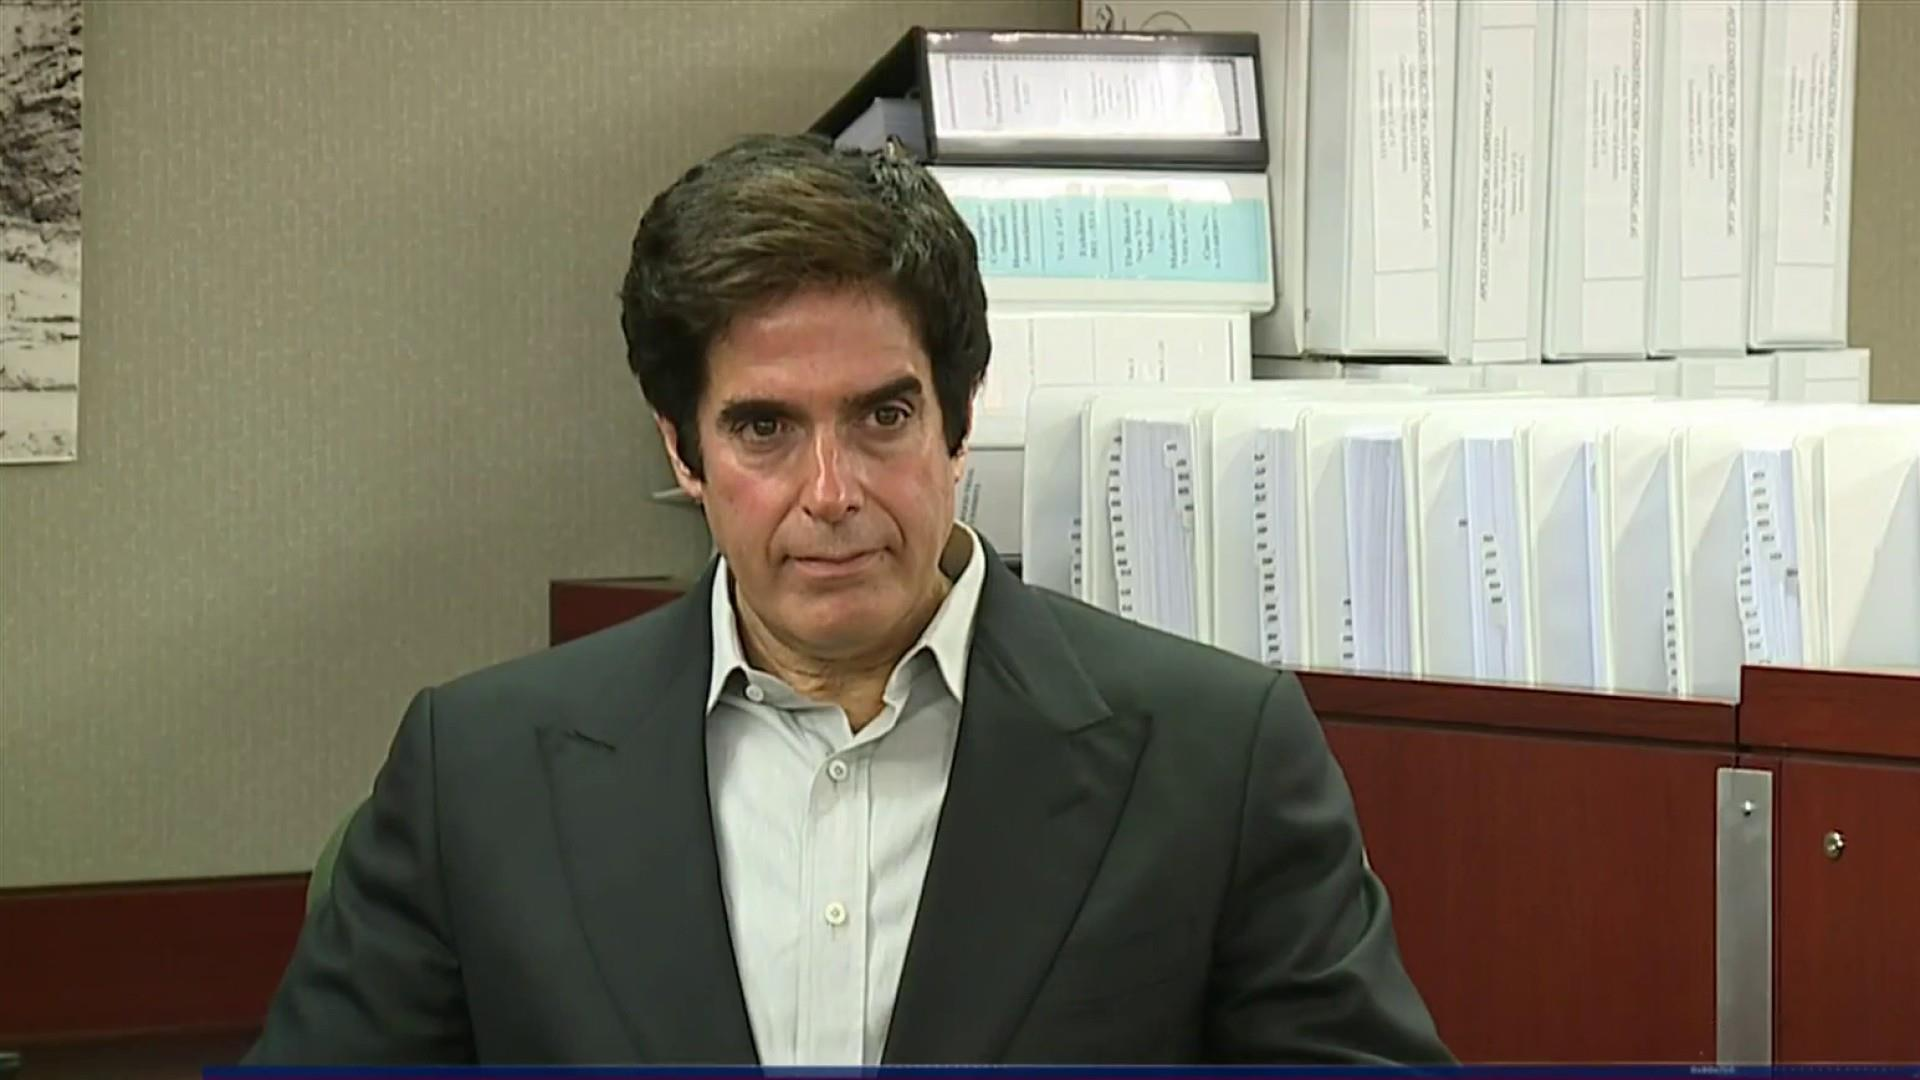 David Copperfield Forced To Reveal Secret Behind Illusion In Las